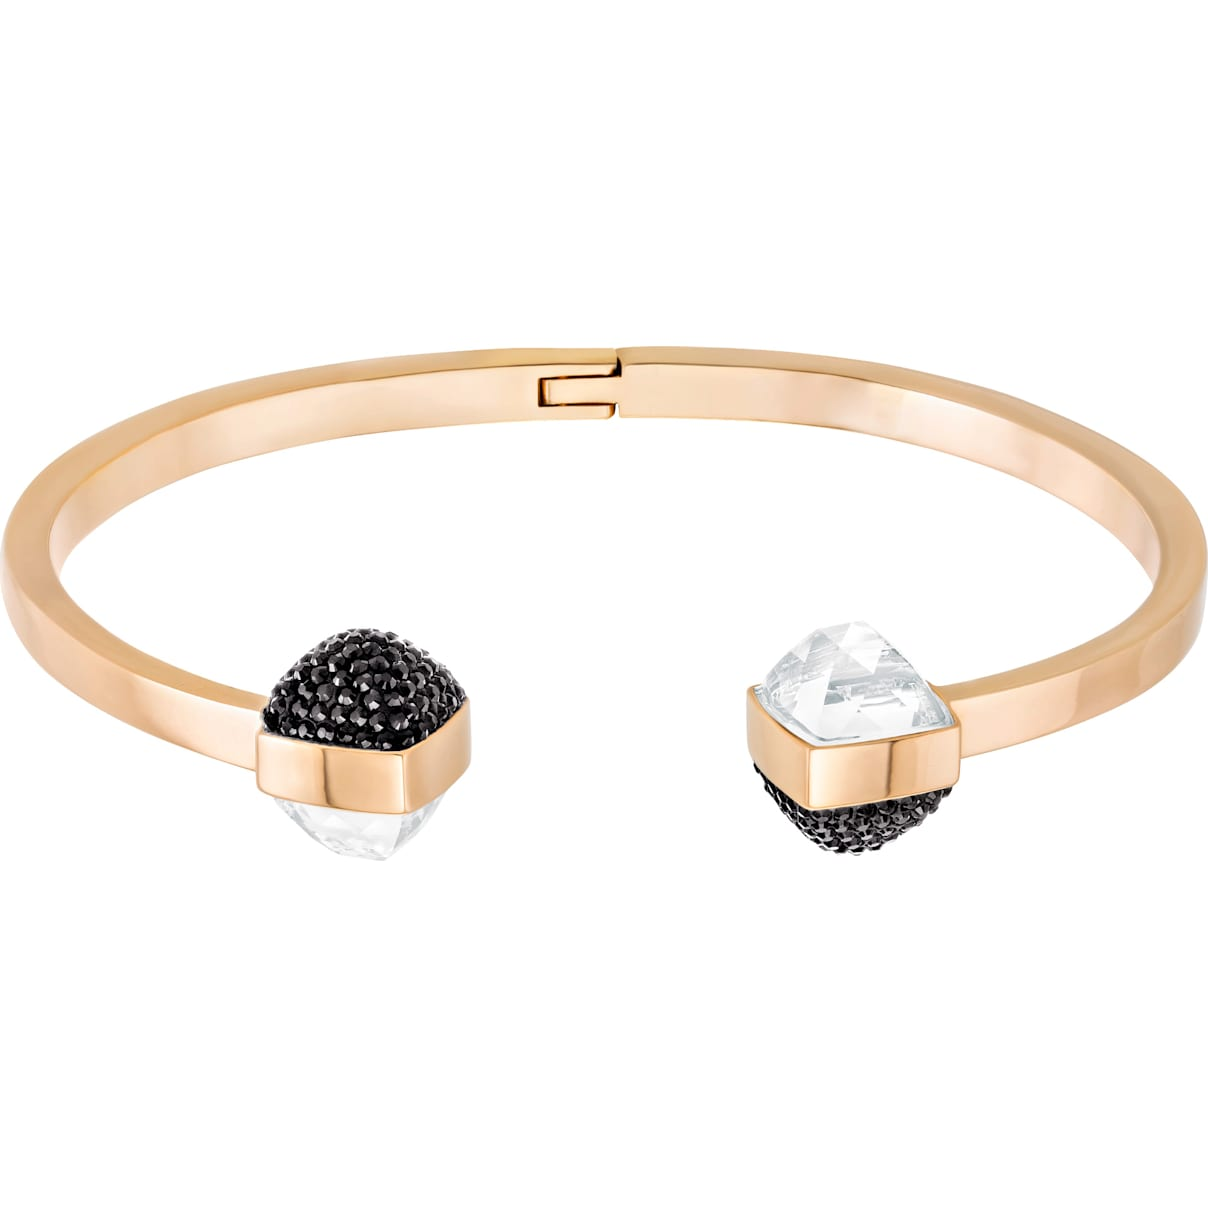 Swarovski Glance Bangle, Multi-colored, Rose-gold tone plated